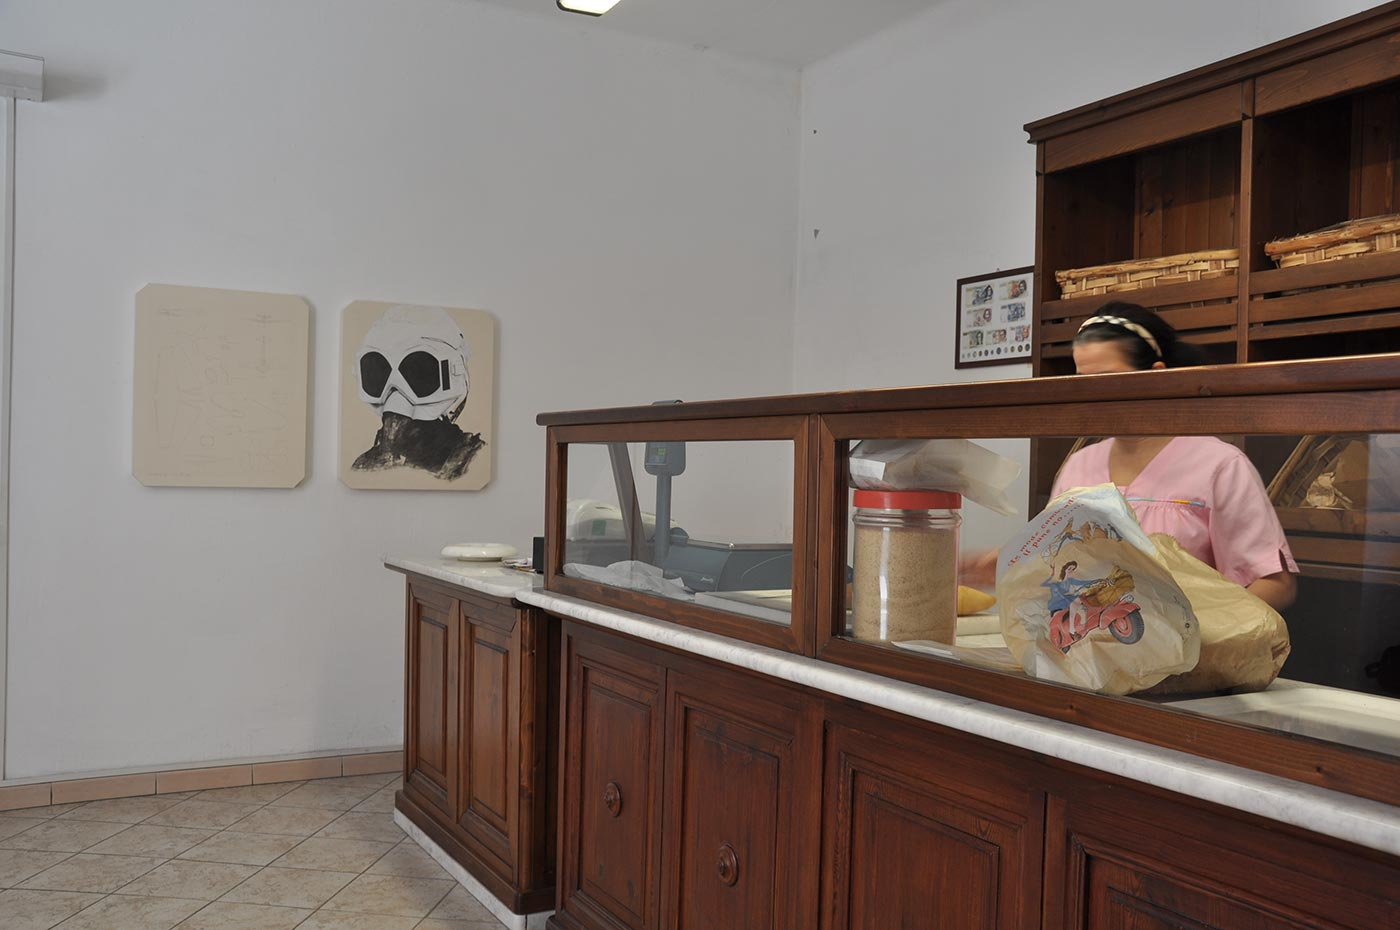 installation view inside the bakery of the town. 2011